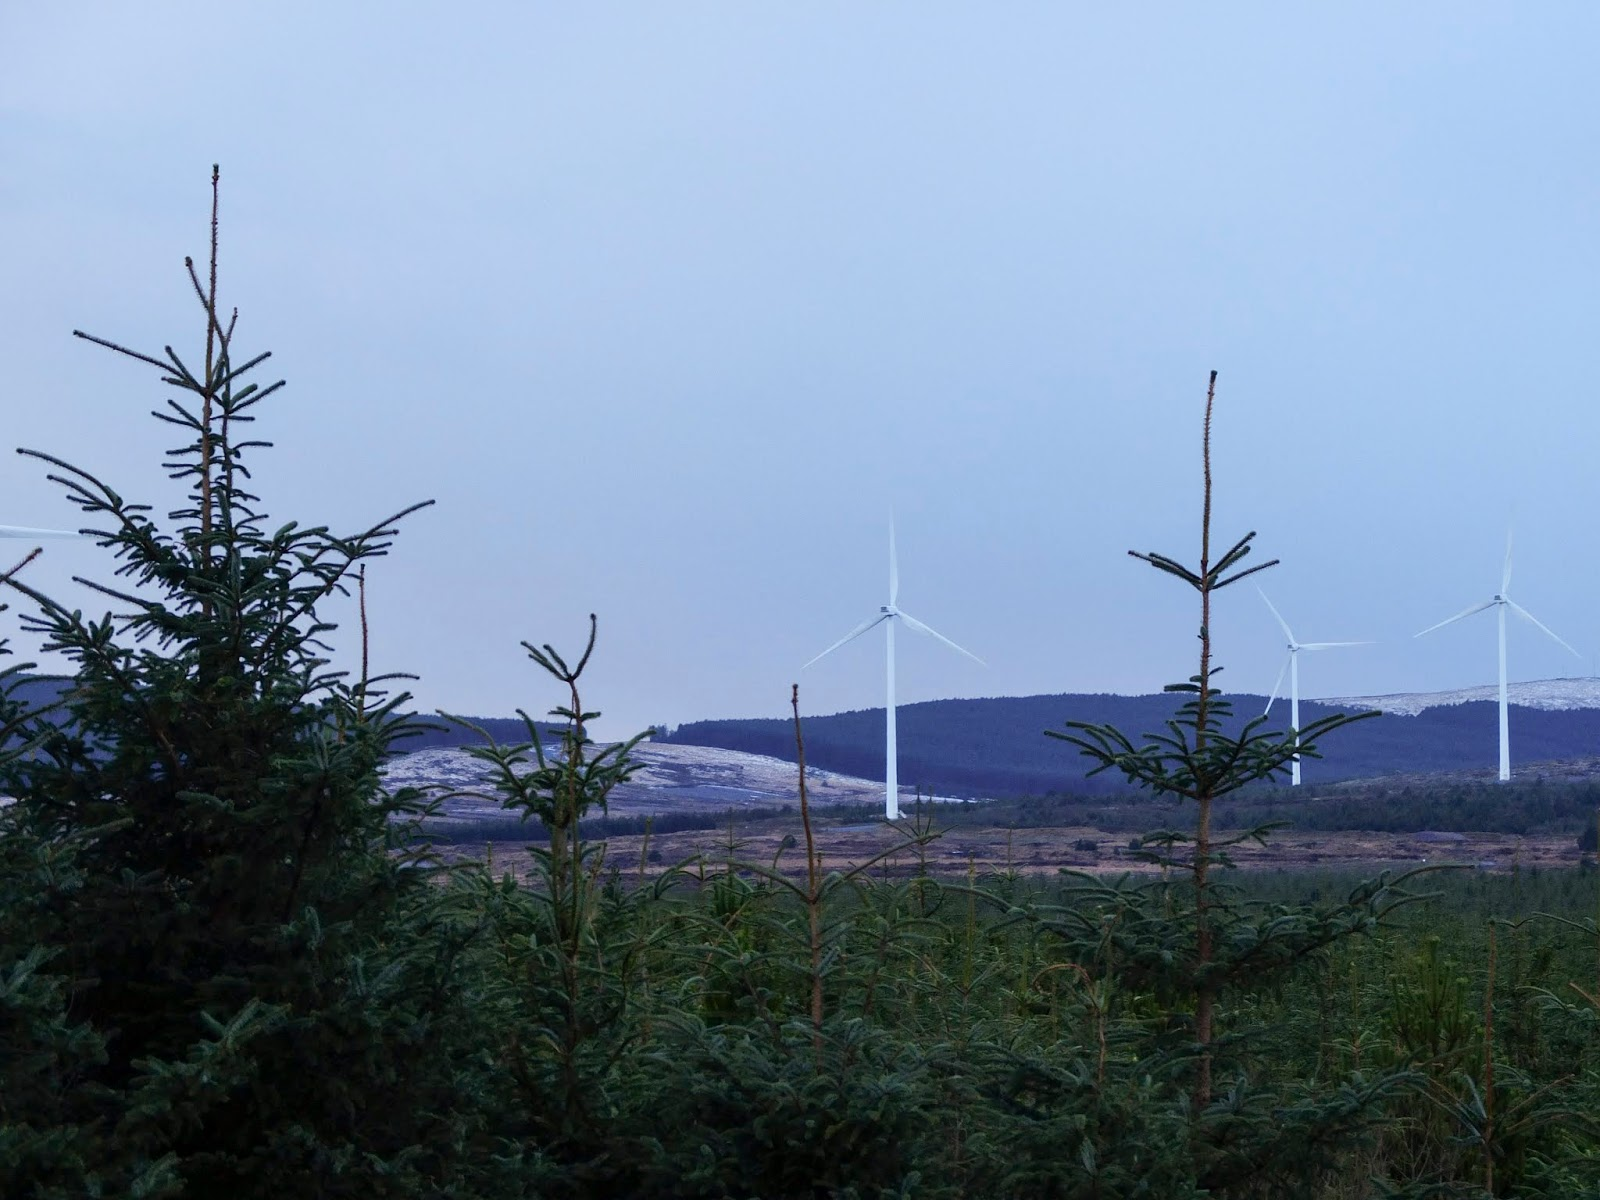 Conifer trees in the foreground with windmills and snow dusted mountains in the distance.